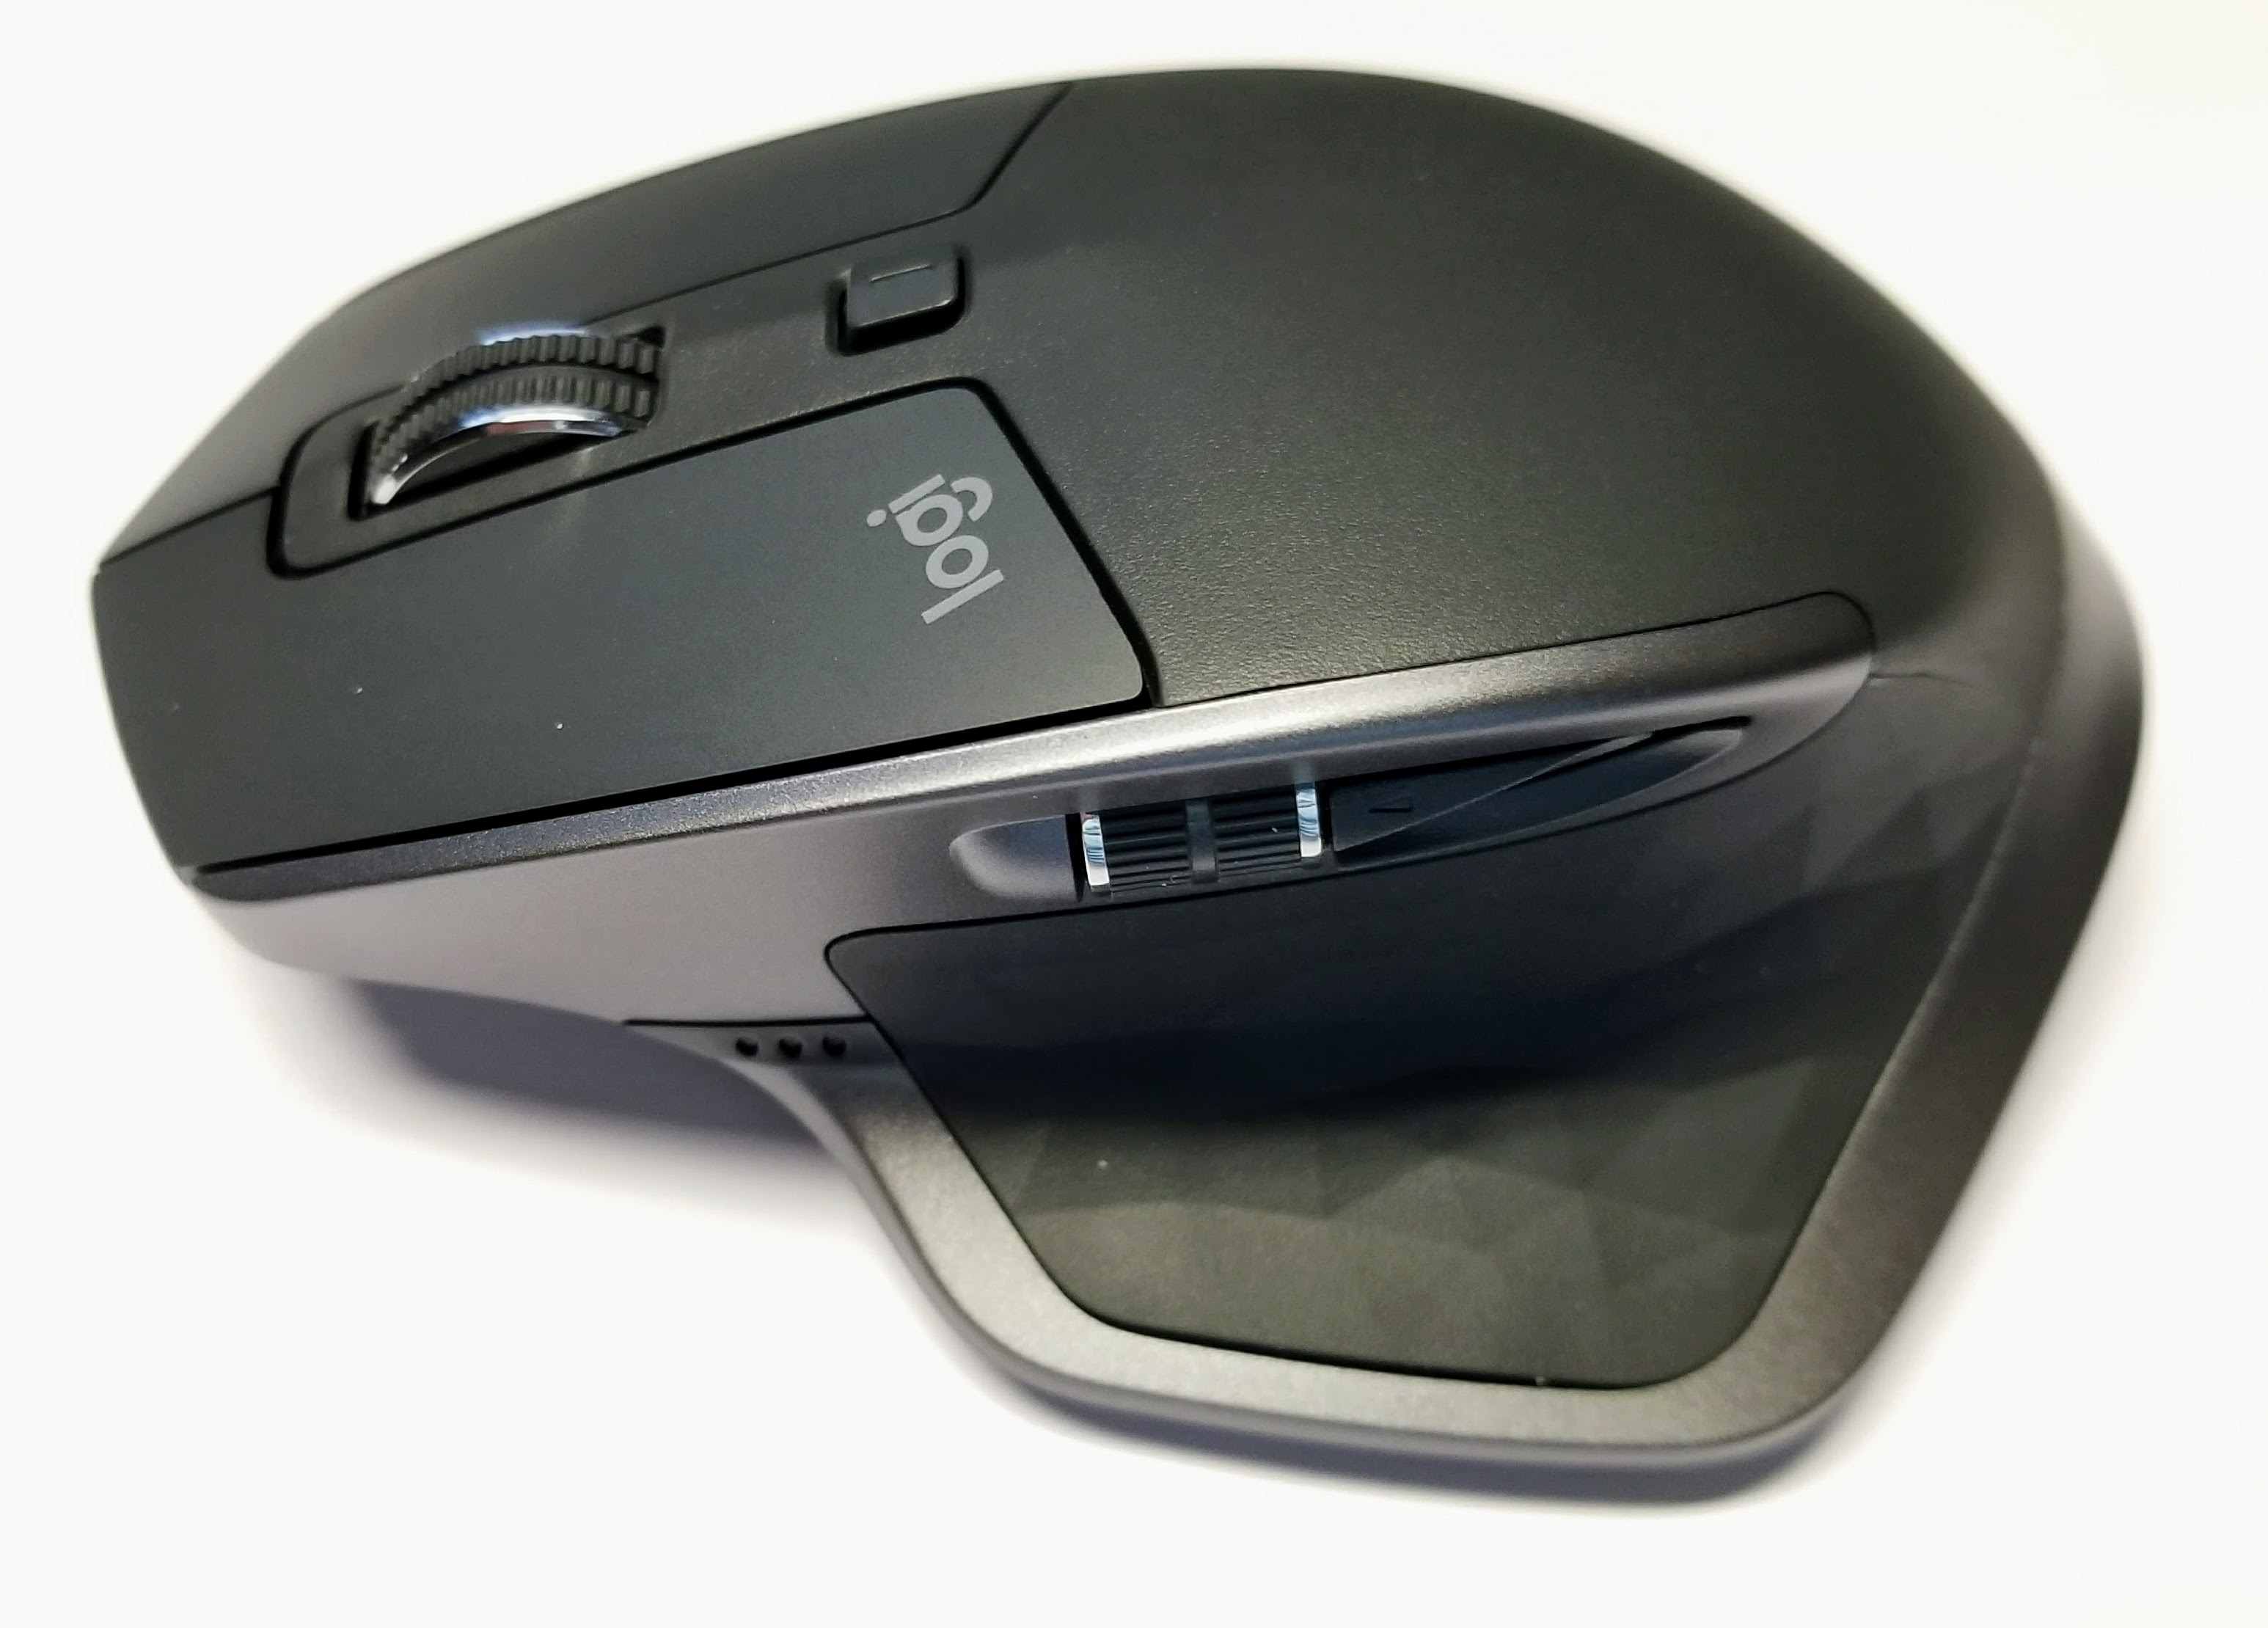 Logitech MX Anywhere 2S Review: Best Bluetooth Mouse